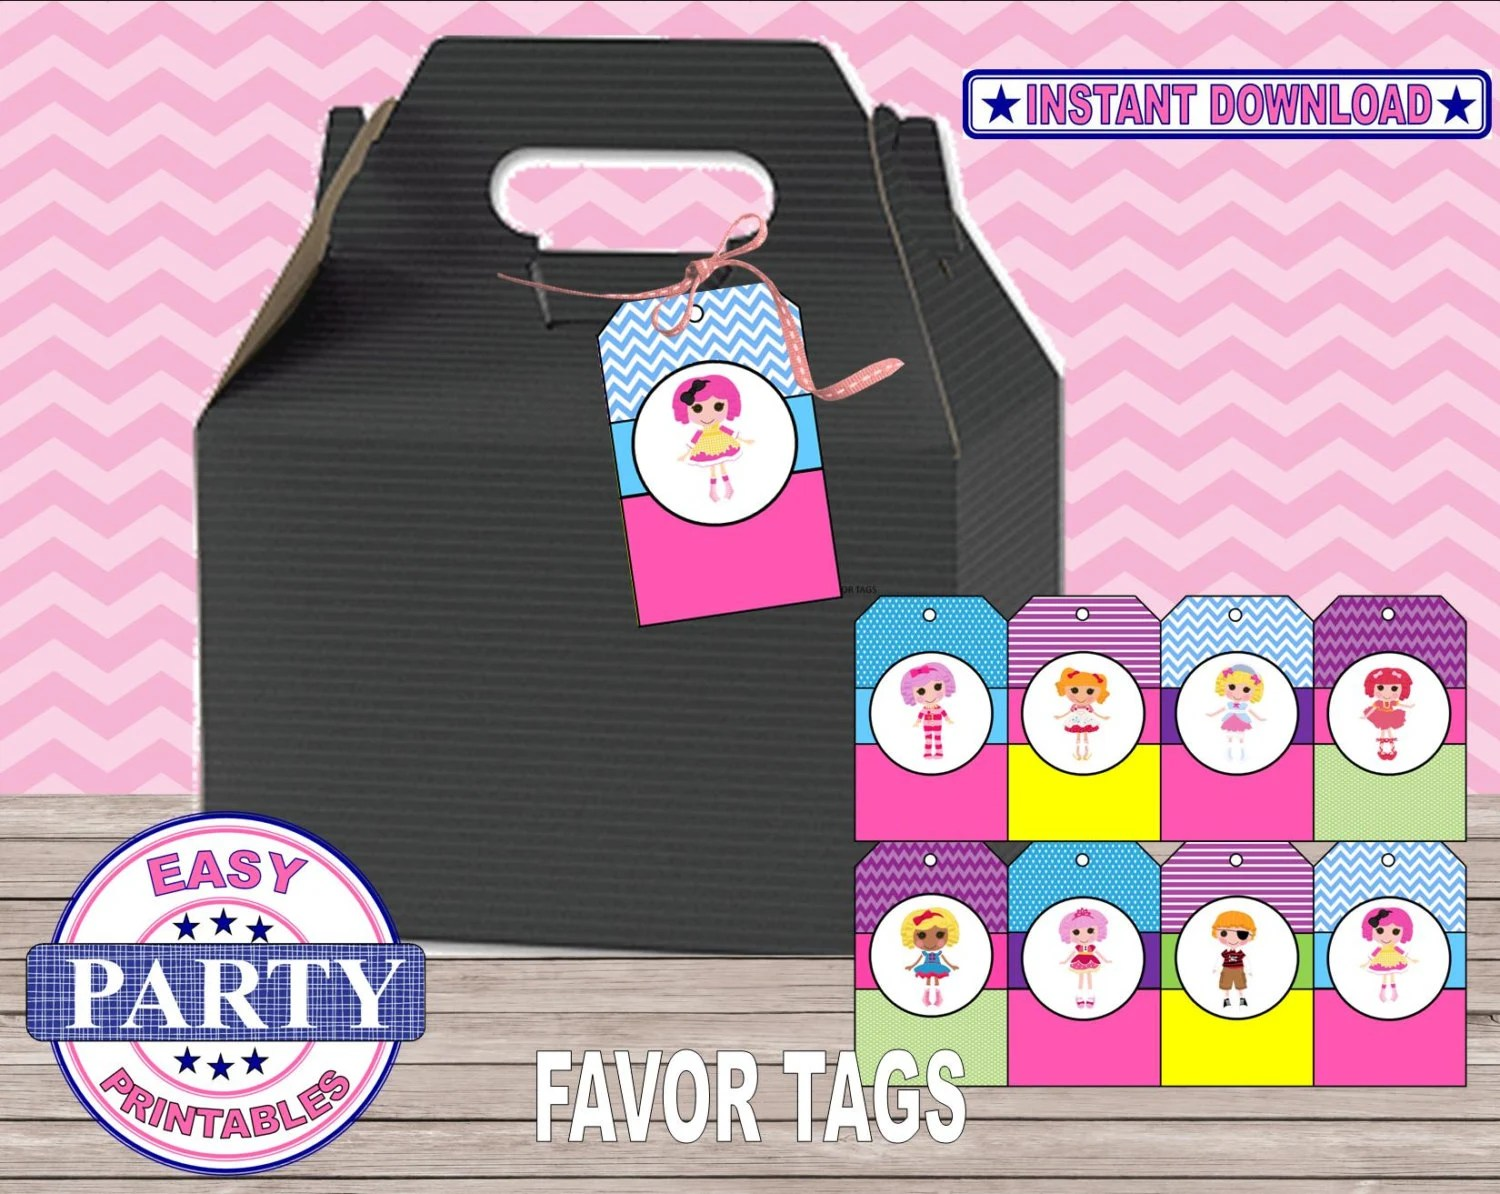 SALE Instant Download Lalaloopsy favor tags gift tags Etsy